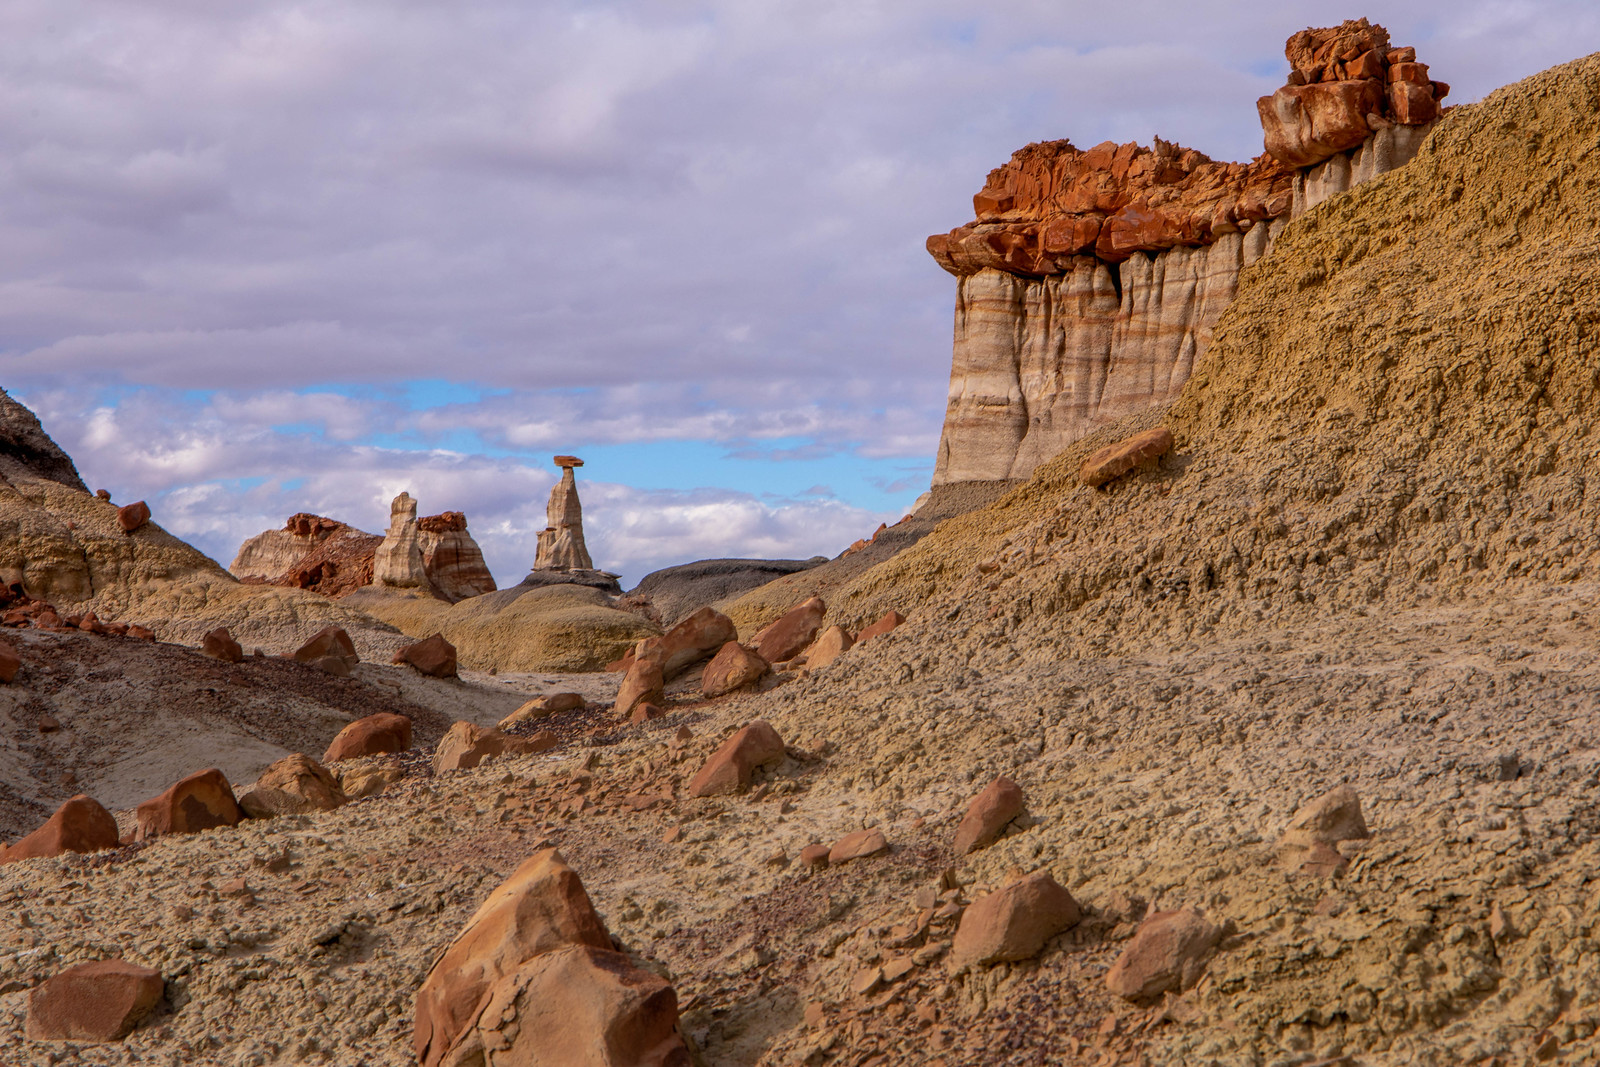 12.25. Bisti Badlands, NM